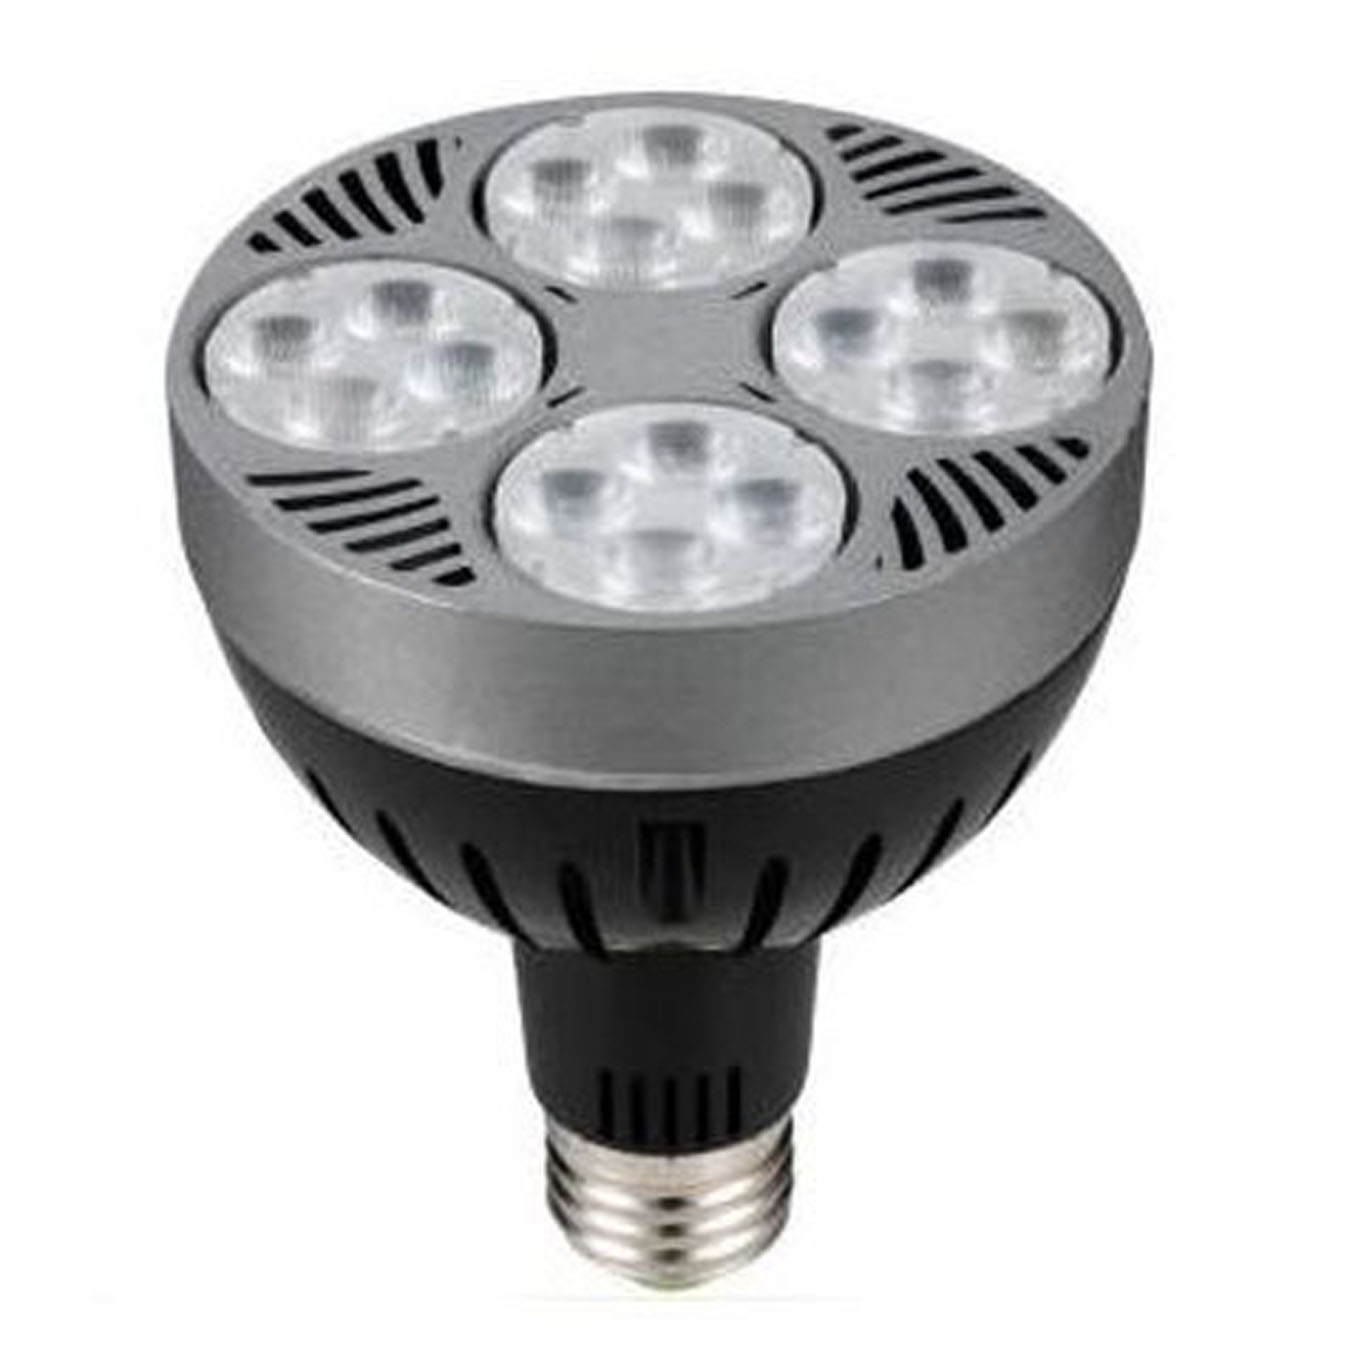 LED bulb PAR30 E27 35W Silamp Spotlight Lamp, Led PAR lamps n